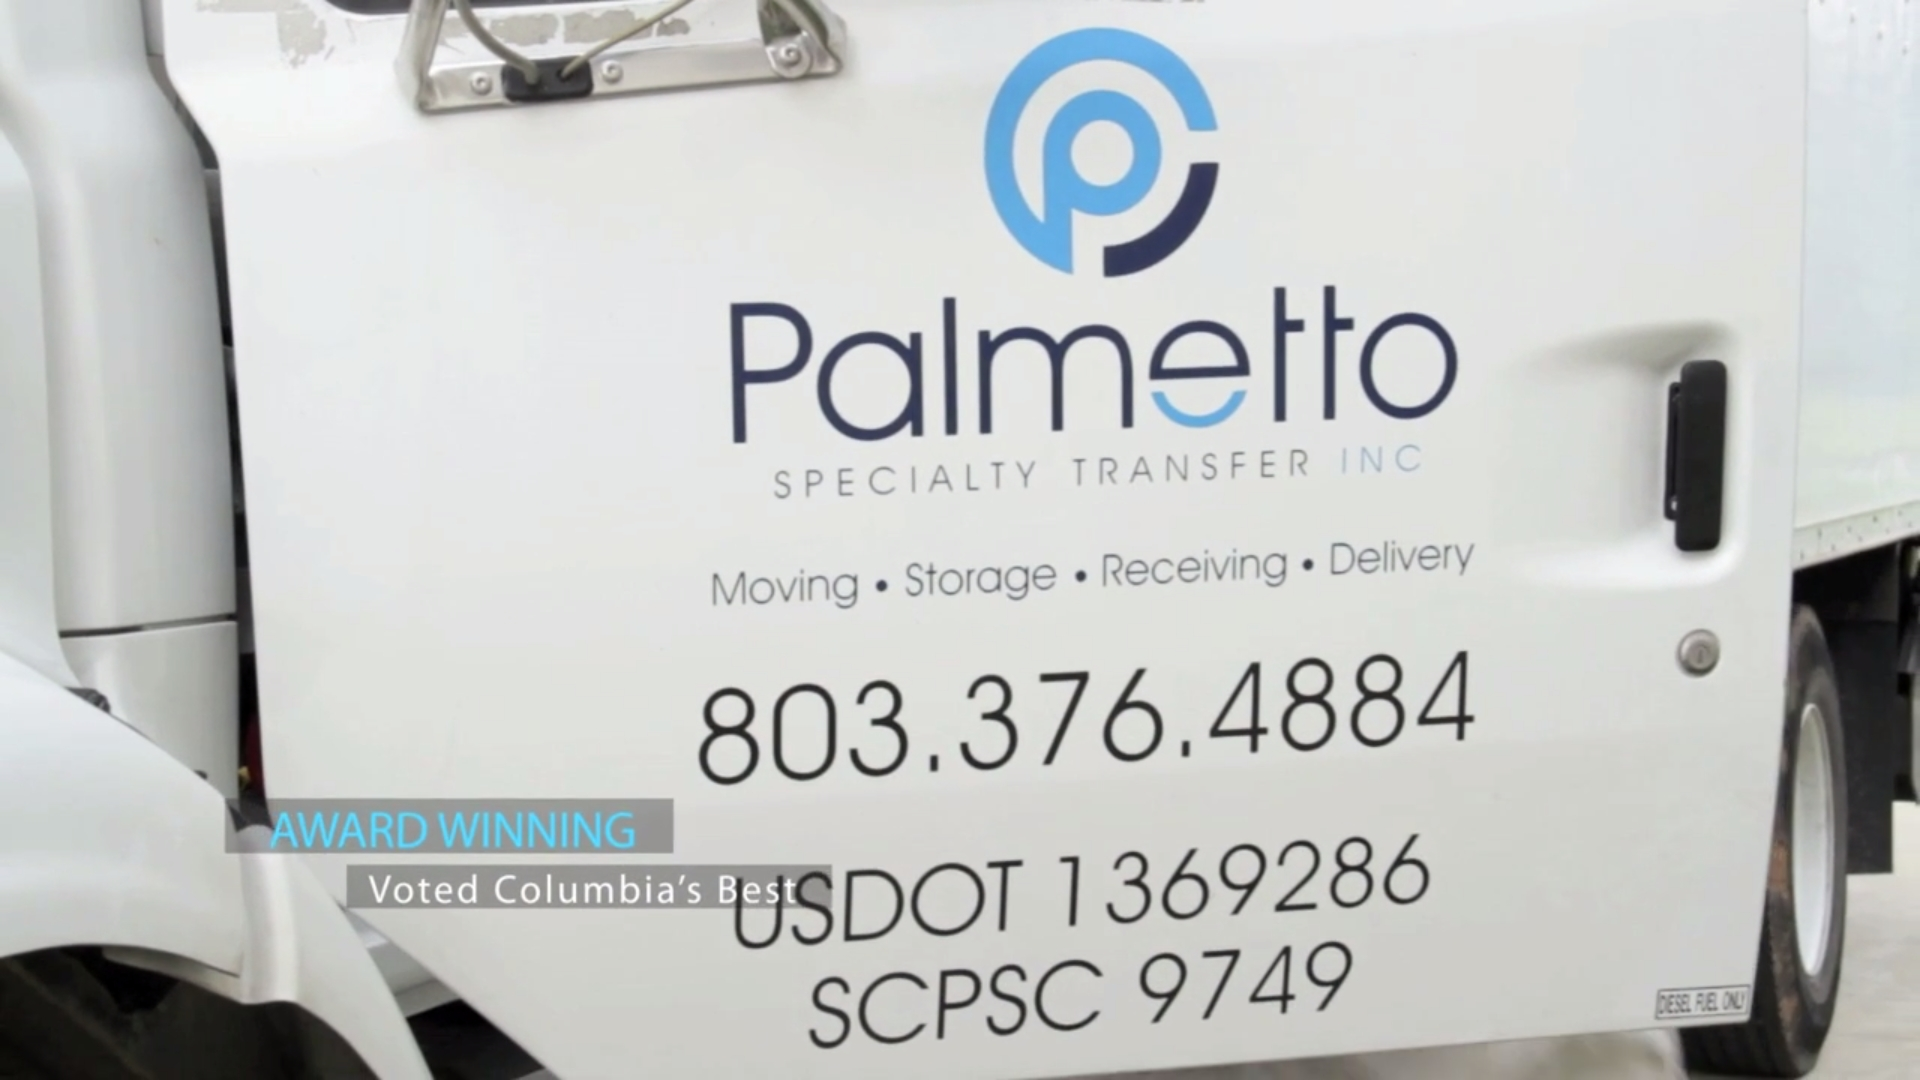 Award Winning Moving Company In South Carolina